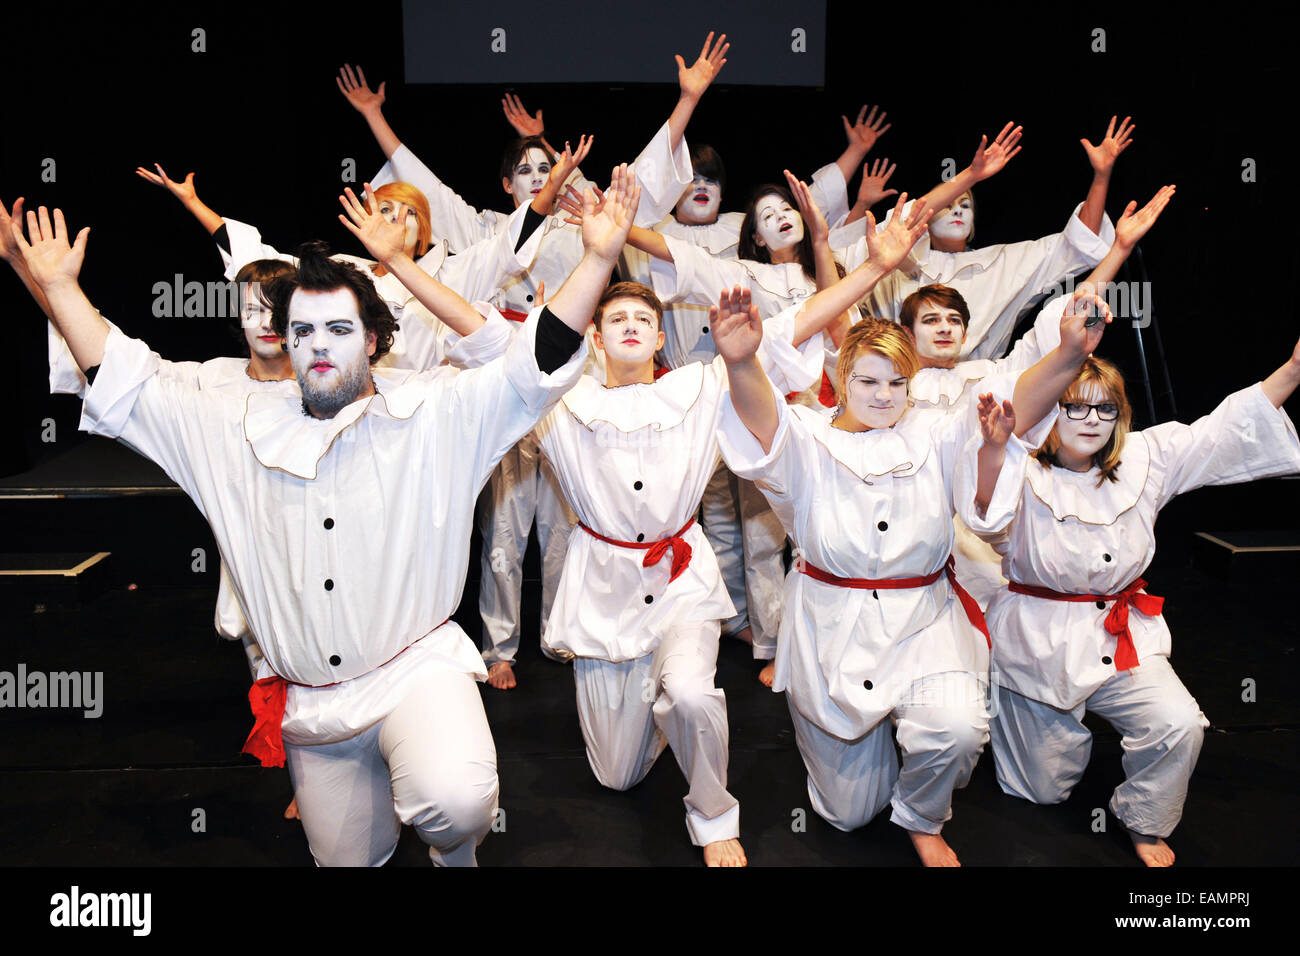 Performing Arts Students on stage at Bradford College with costume and makeup. - Stock Image